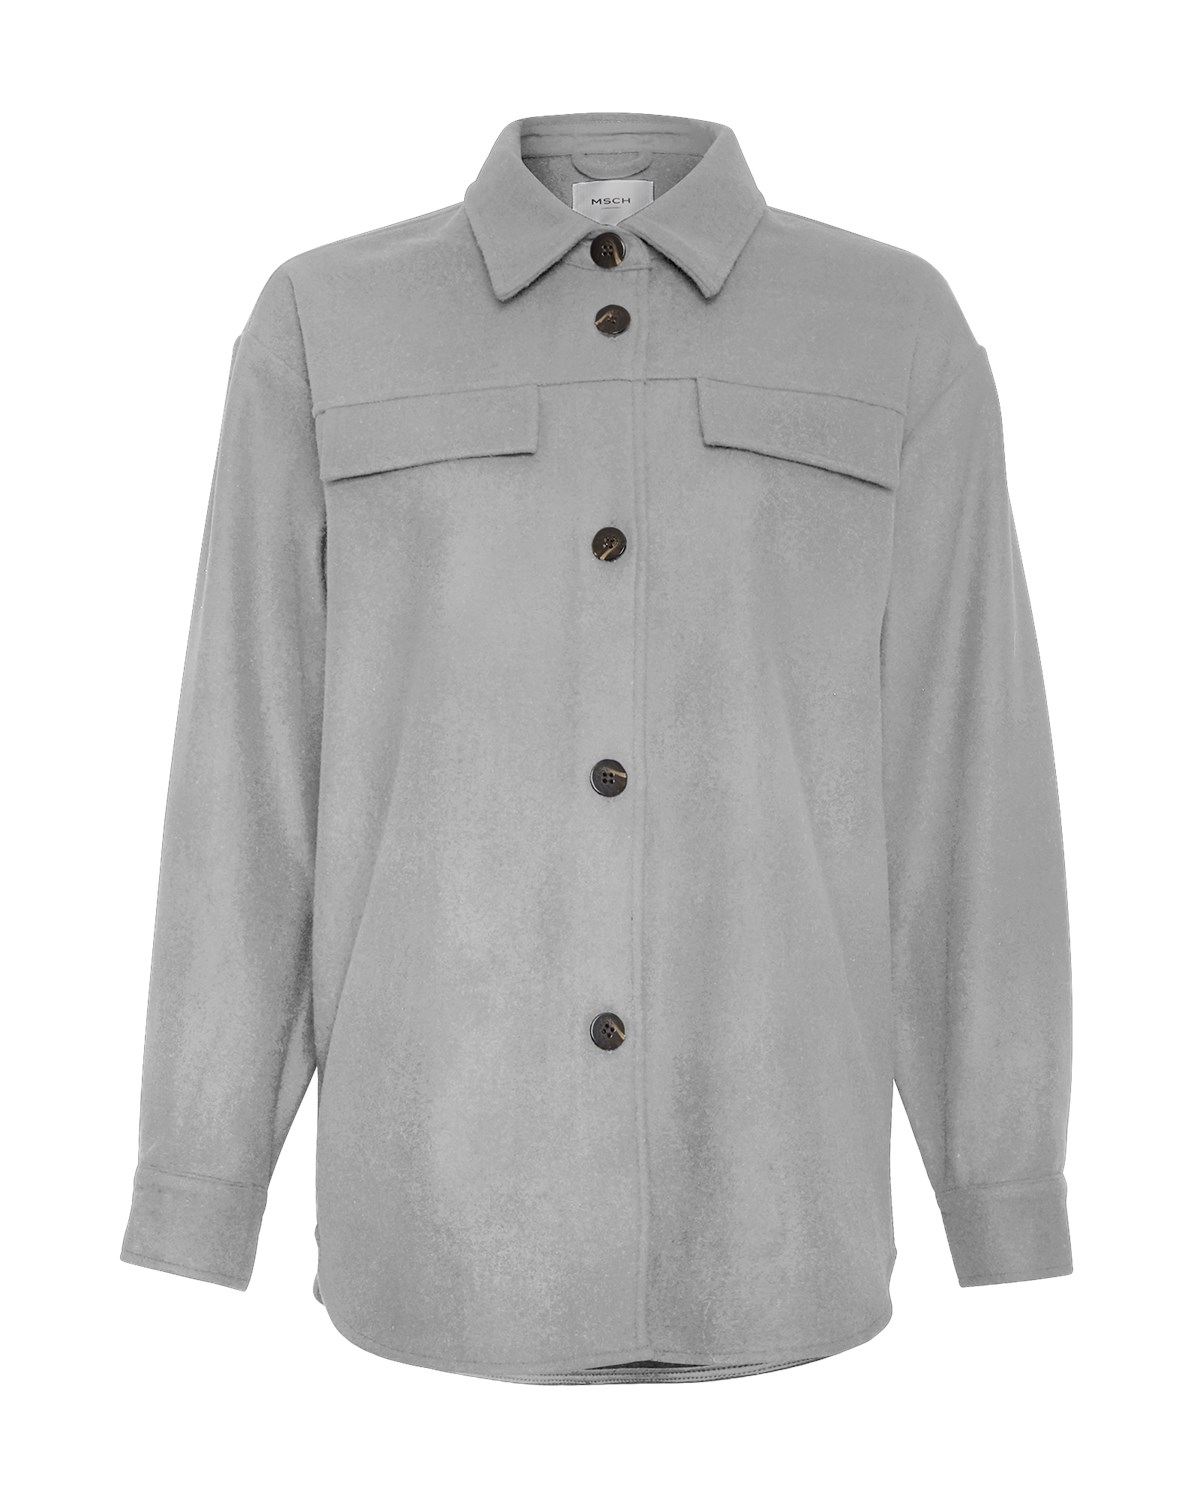 MSCH Maude Jacket, light grey melange